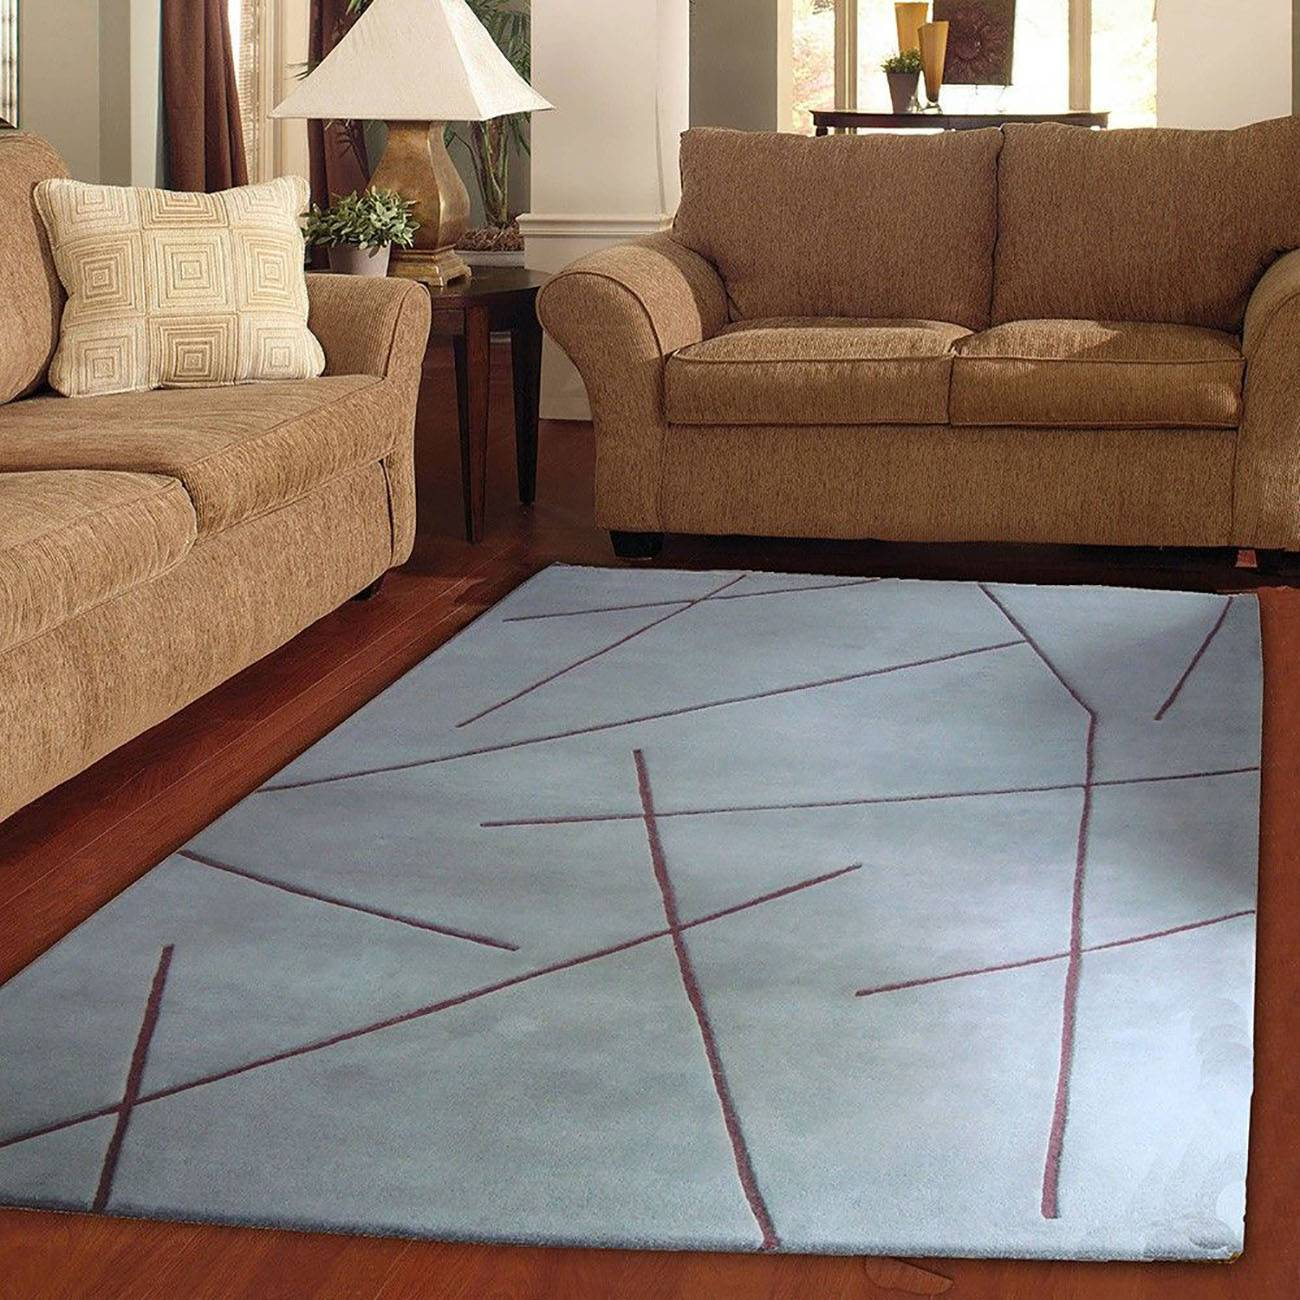 abstract rugs, minimalist interior, handwoven carpet, commercial rugs home rugs